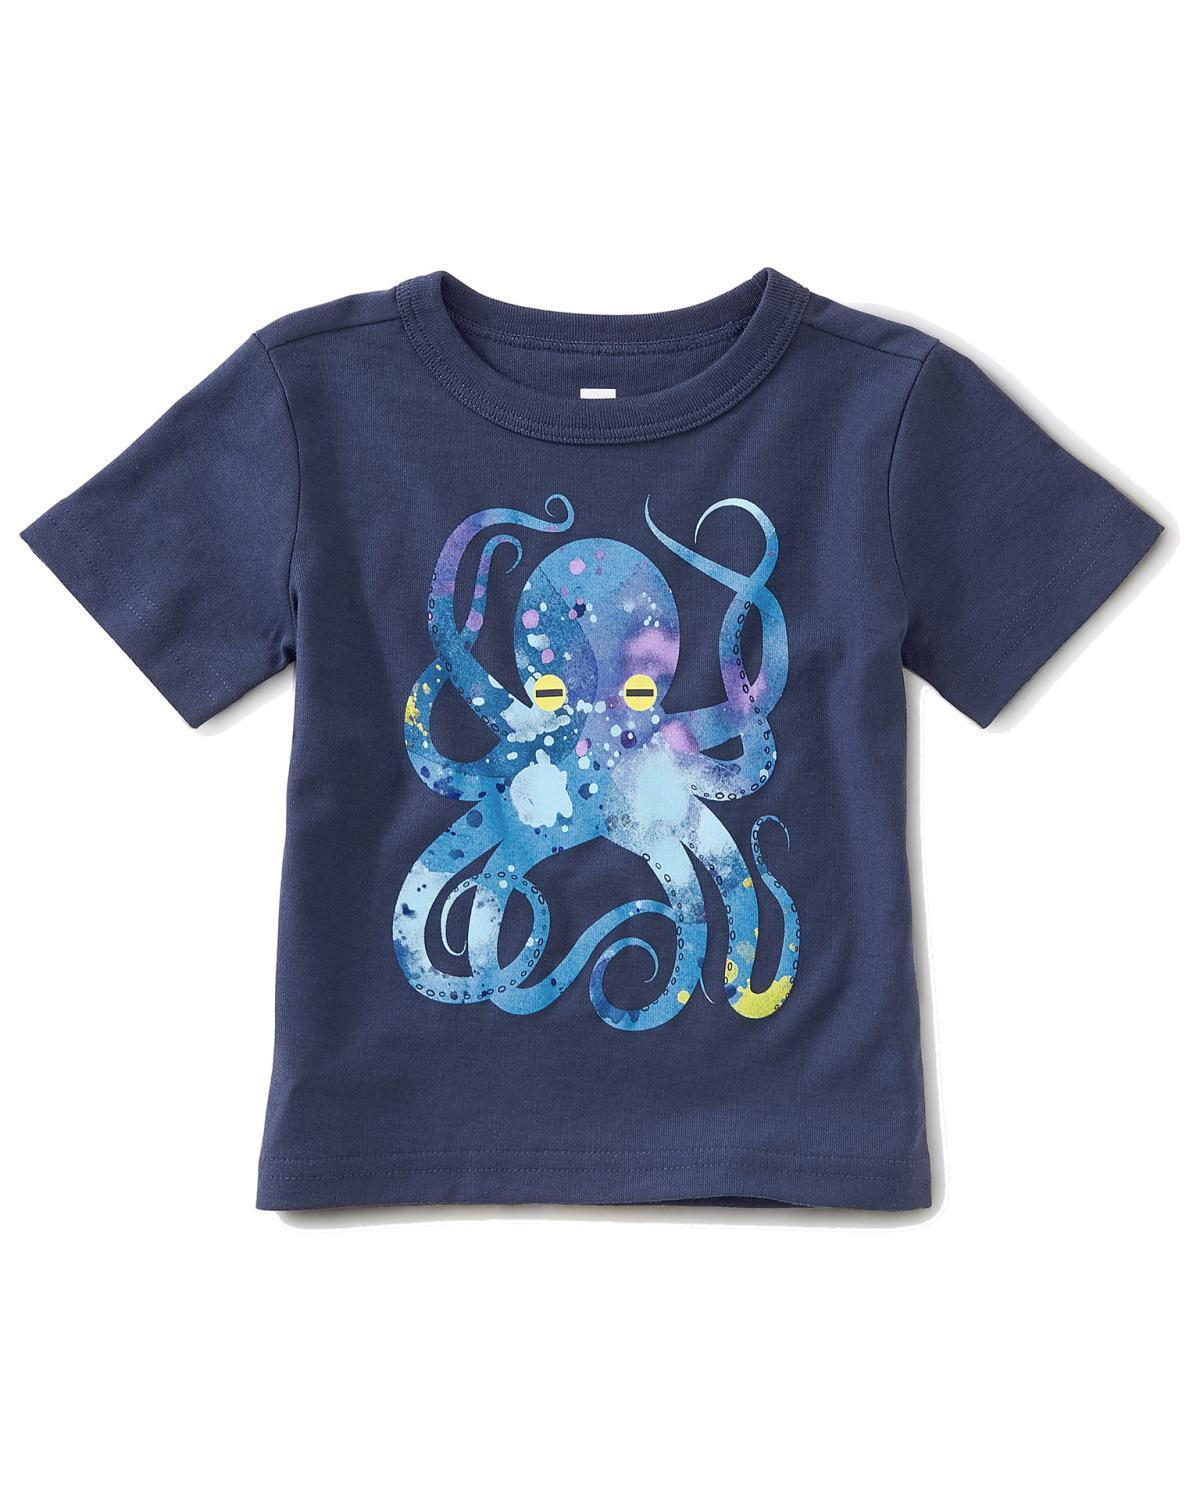 Little tea collection baby boy 3-6 pop octopus baby graphic graphic tee